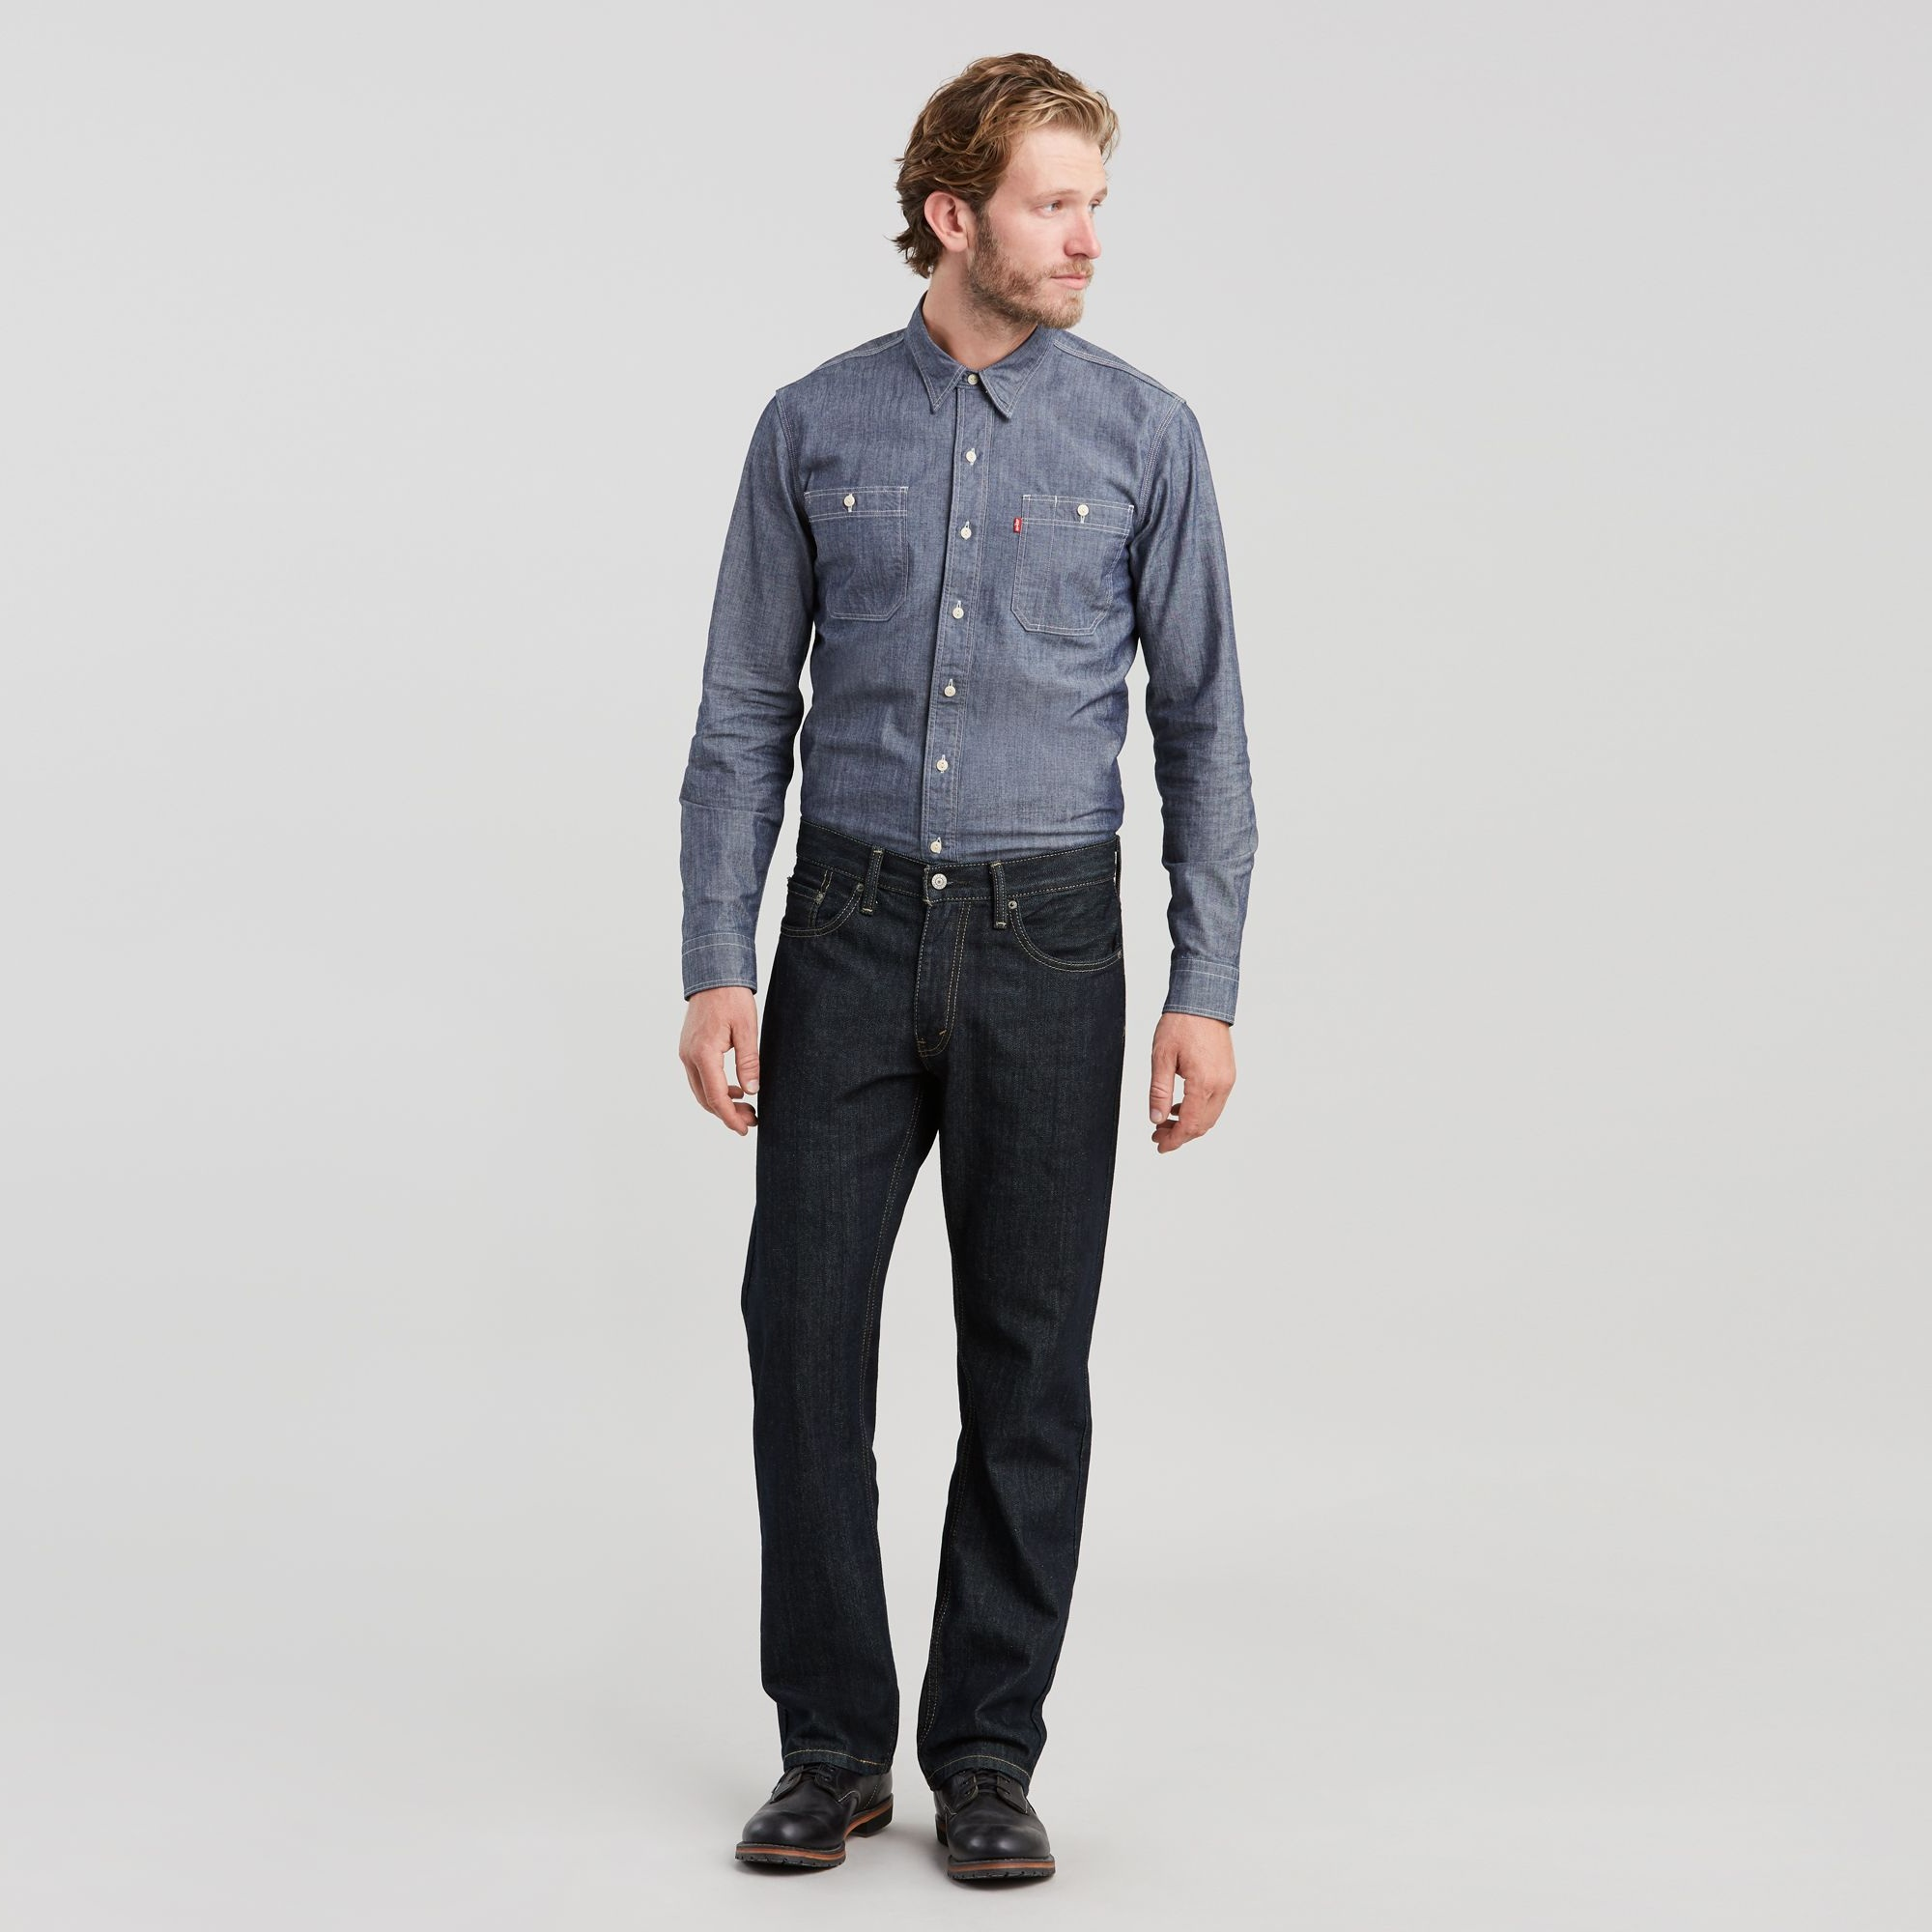 559™ Relaxed Straight Jeans Tumbled Rigid 00559-4010 1